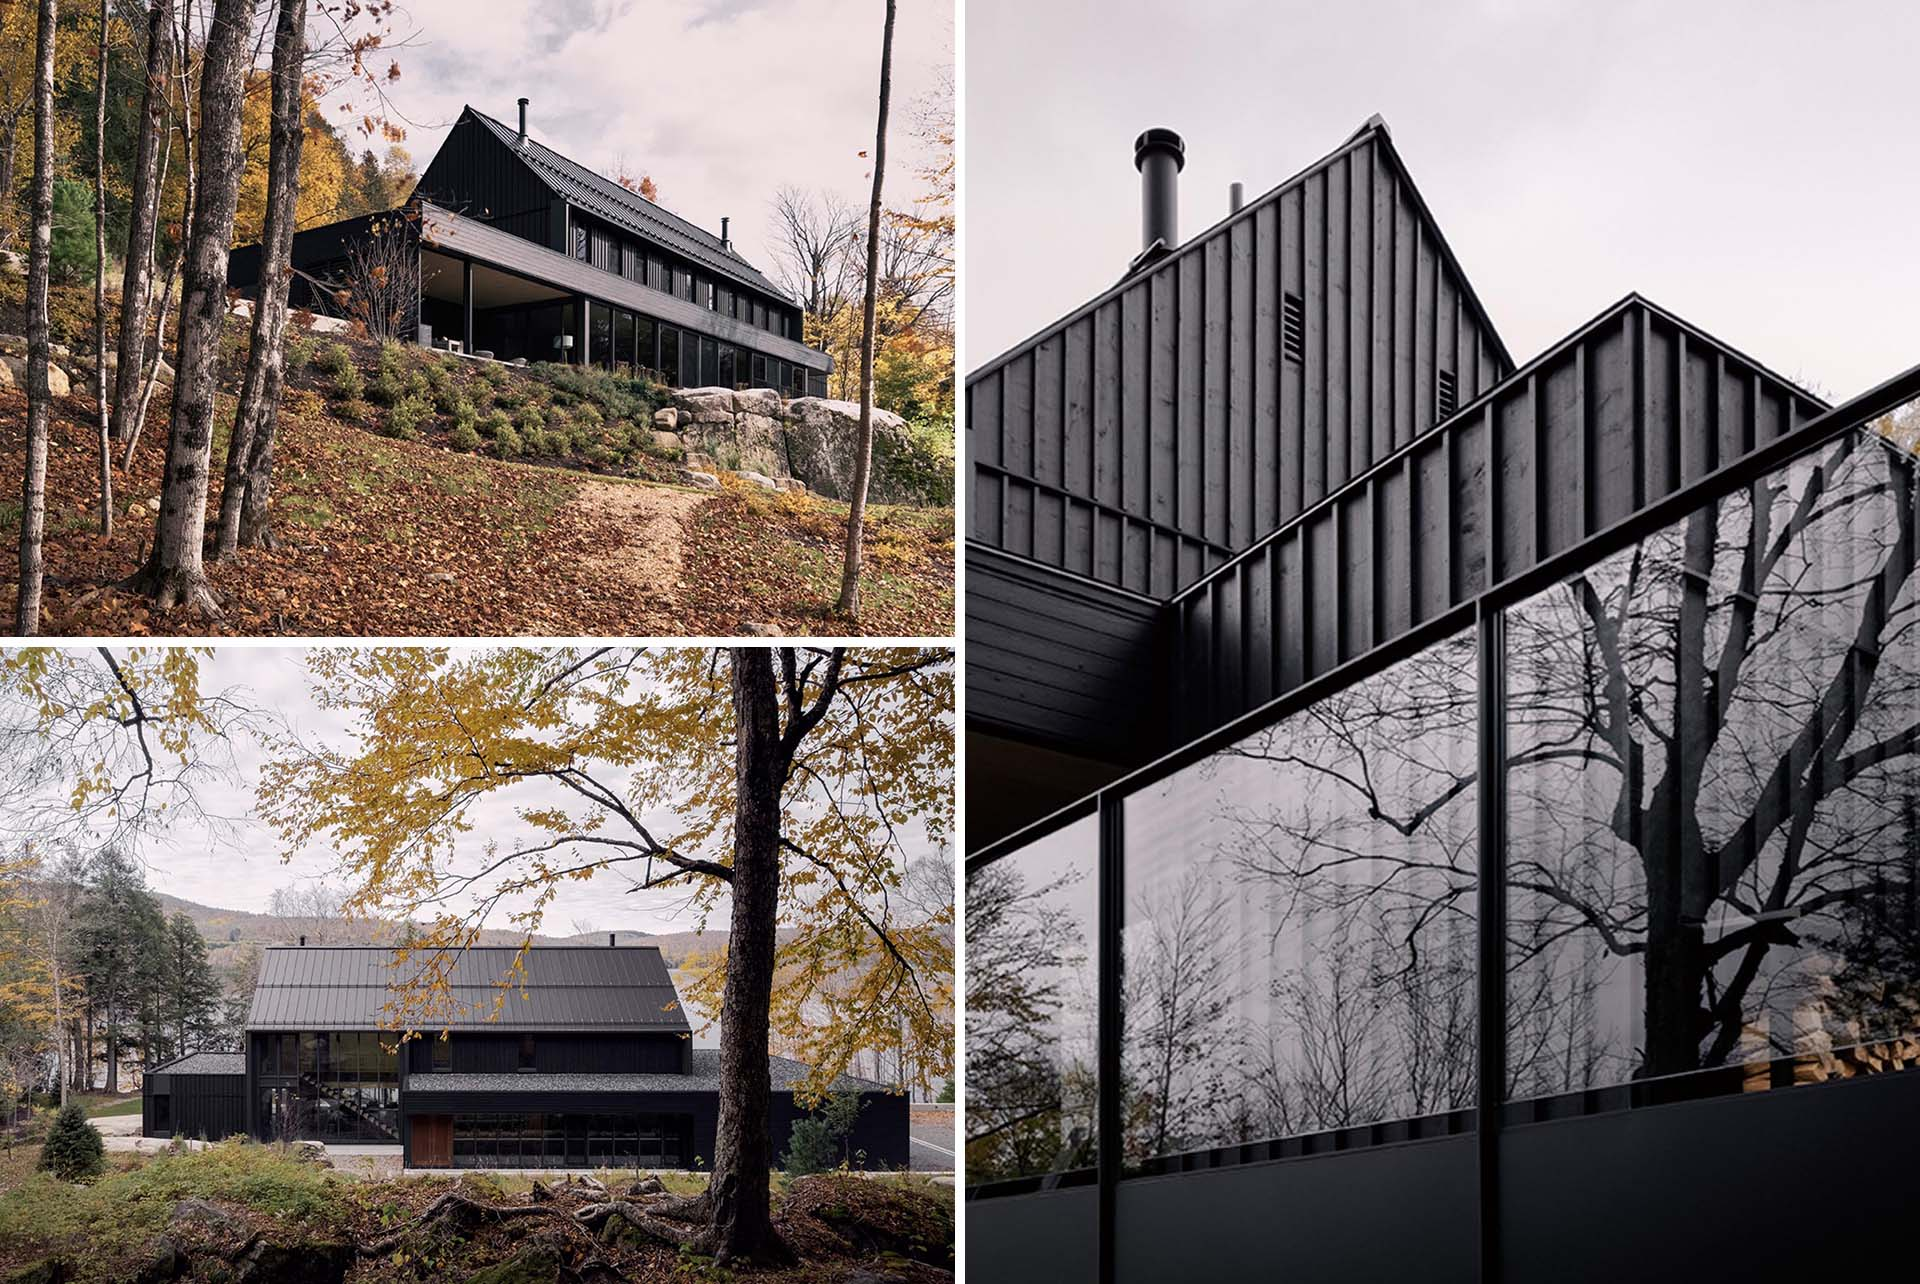 A modern house with a black exterior.